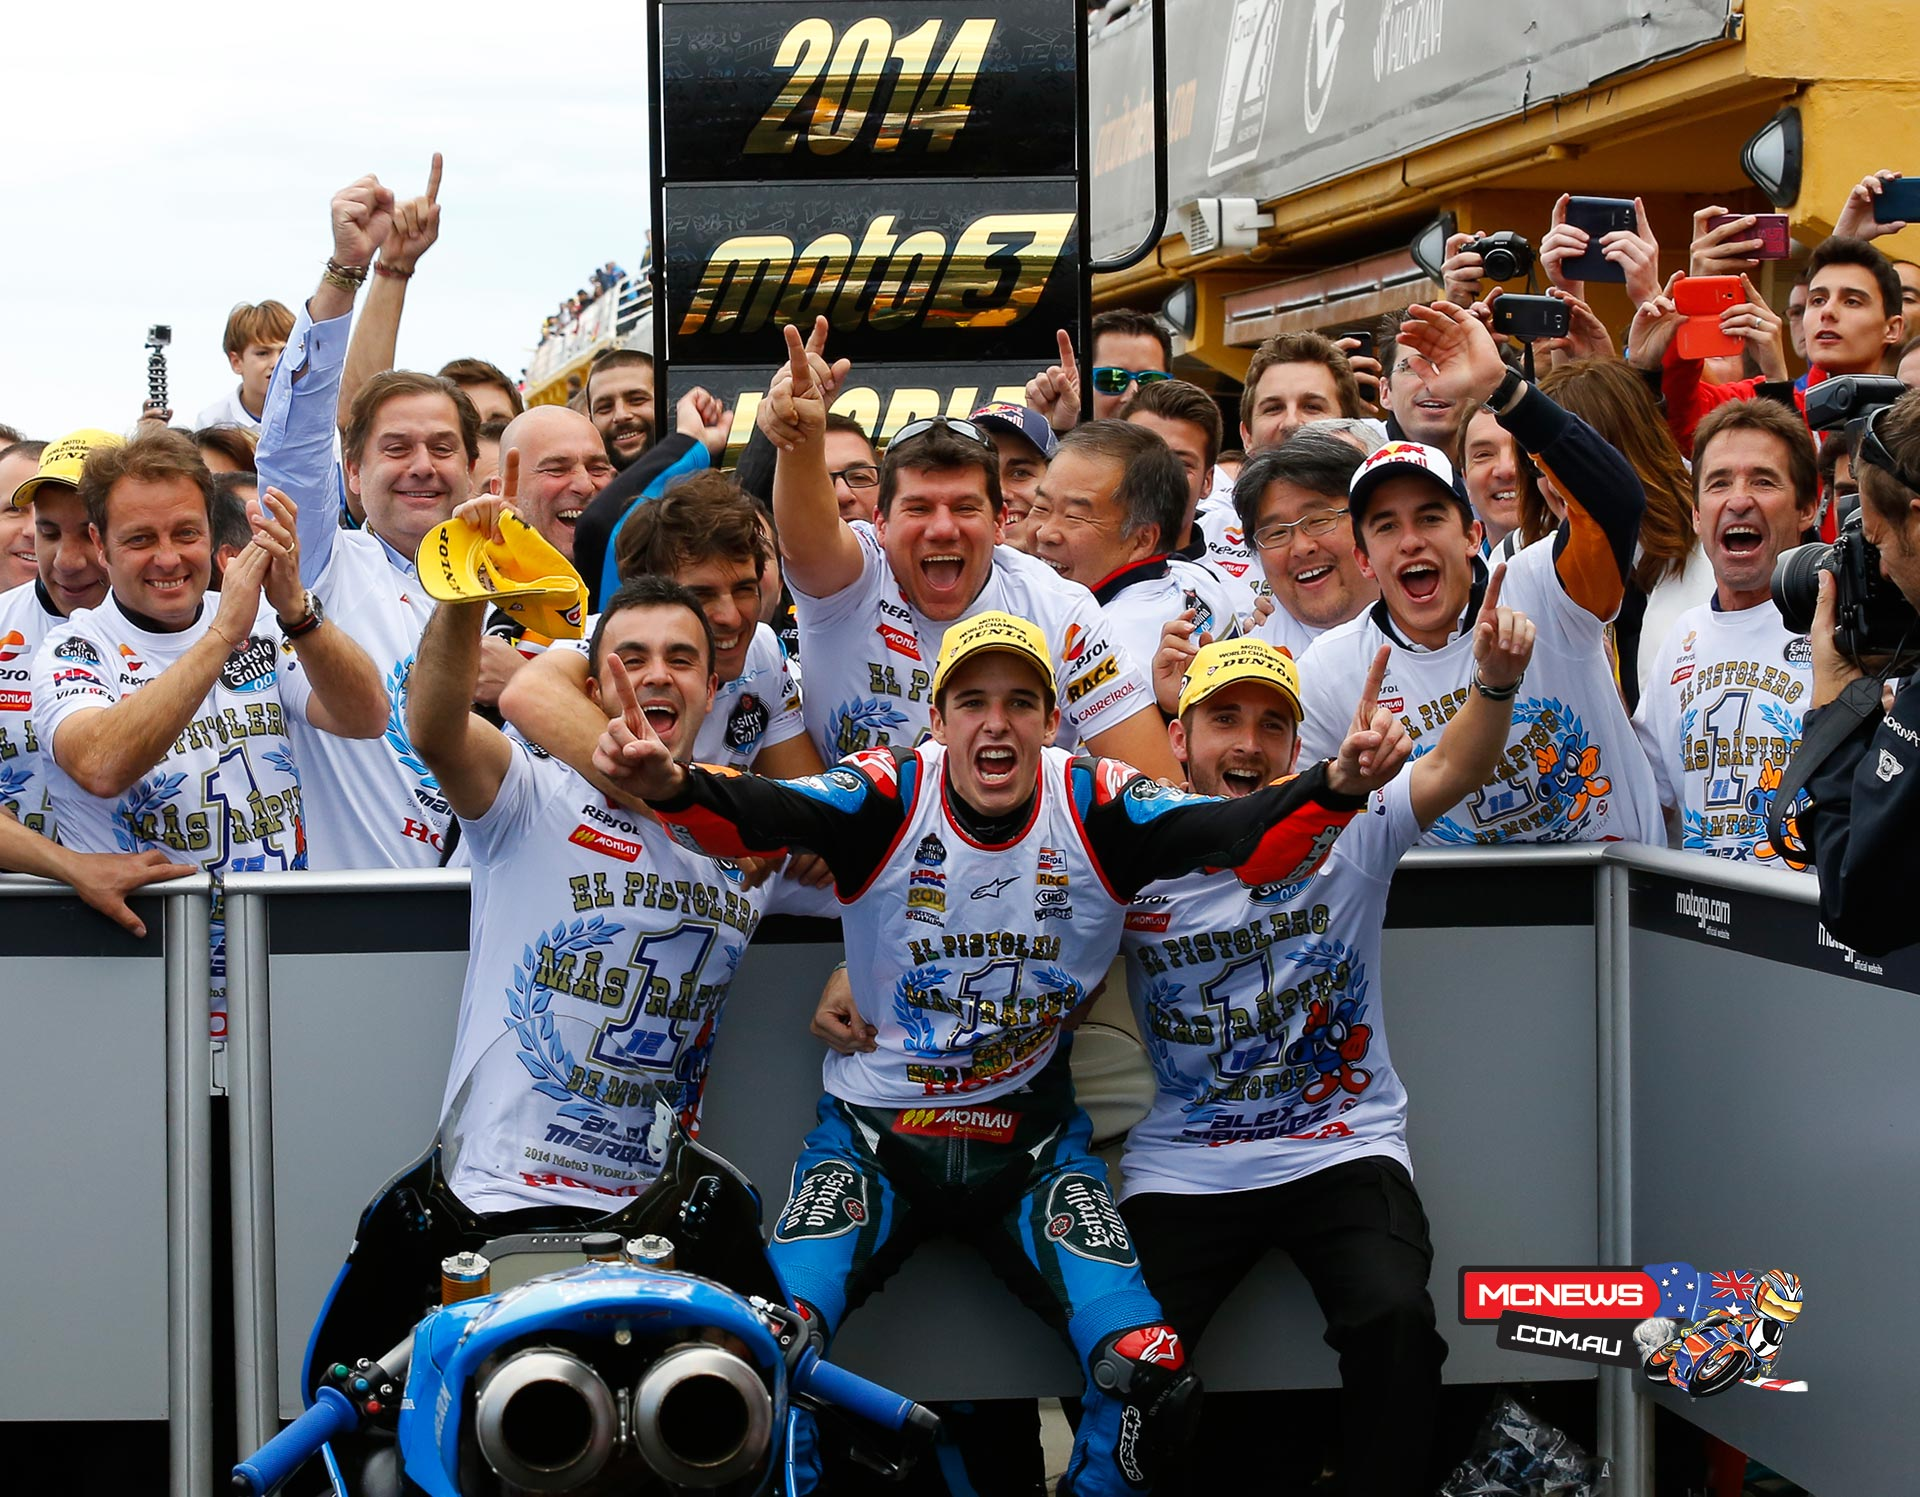 Alex Marquez celebrates 2014 Moto3 World Title